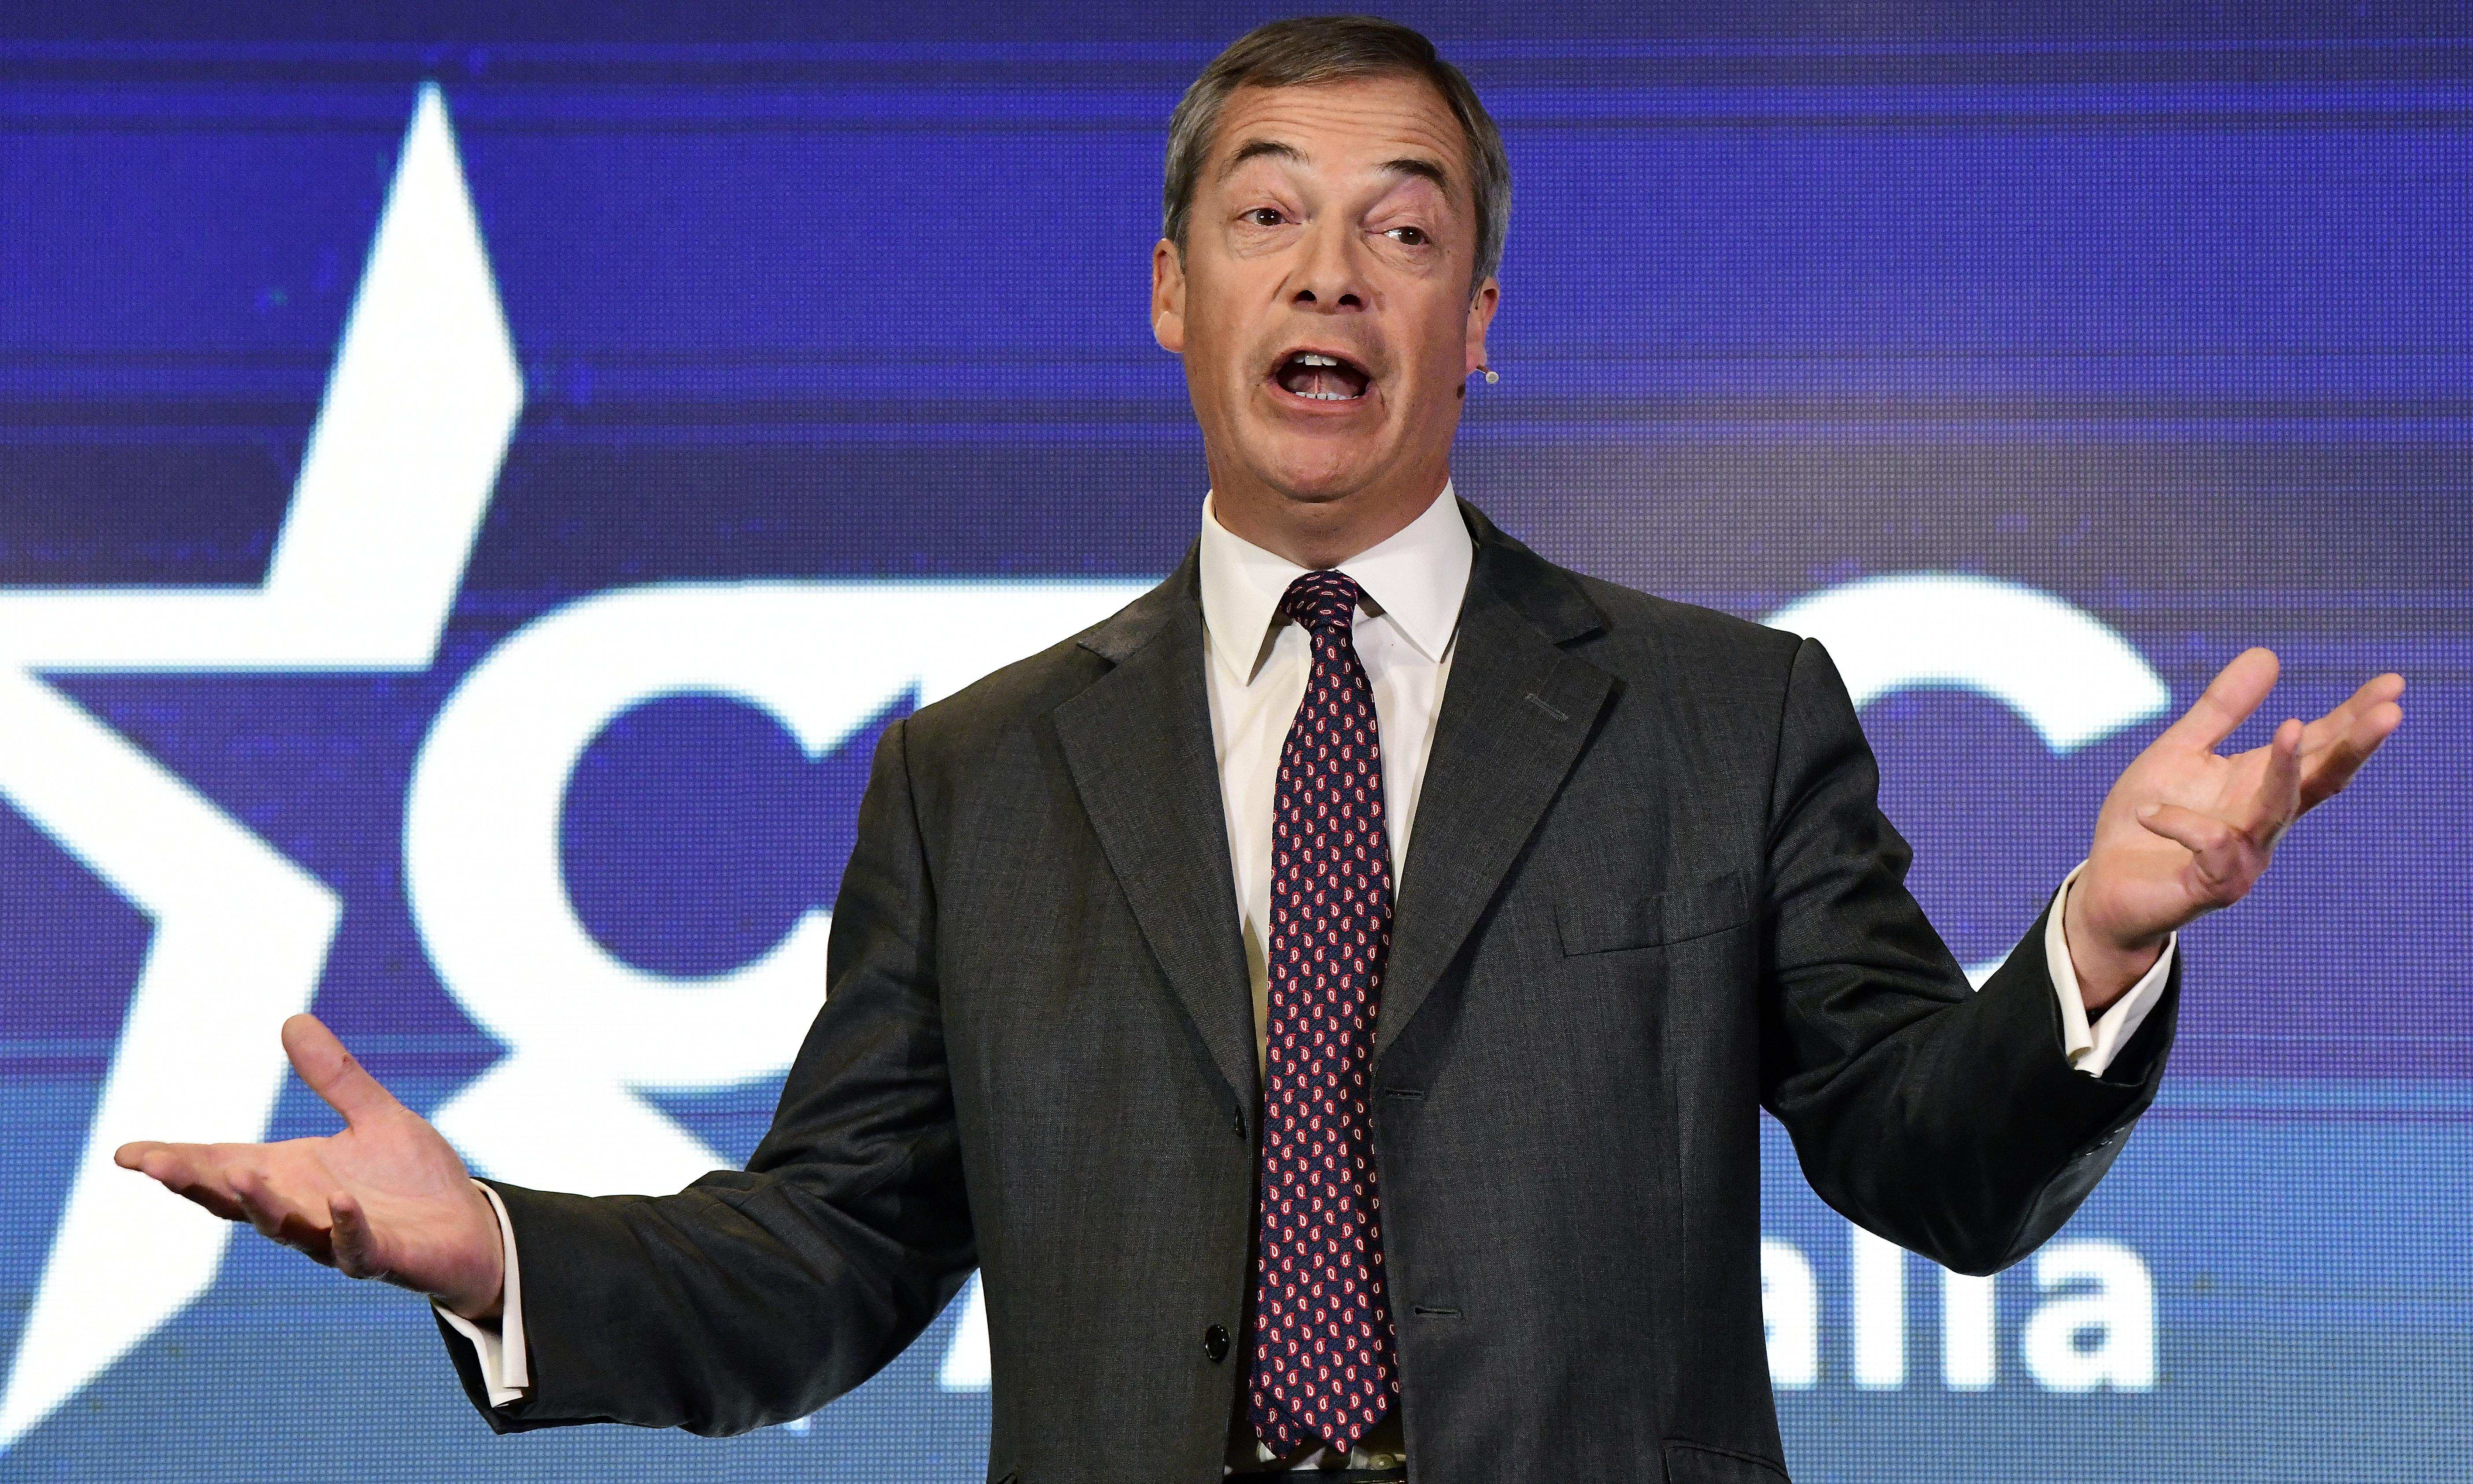 Brexit party MEPs' links to alt-right media agenda exposed